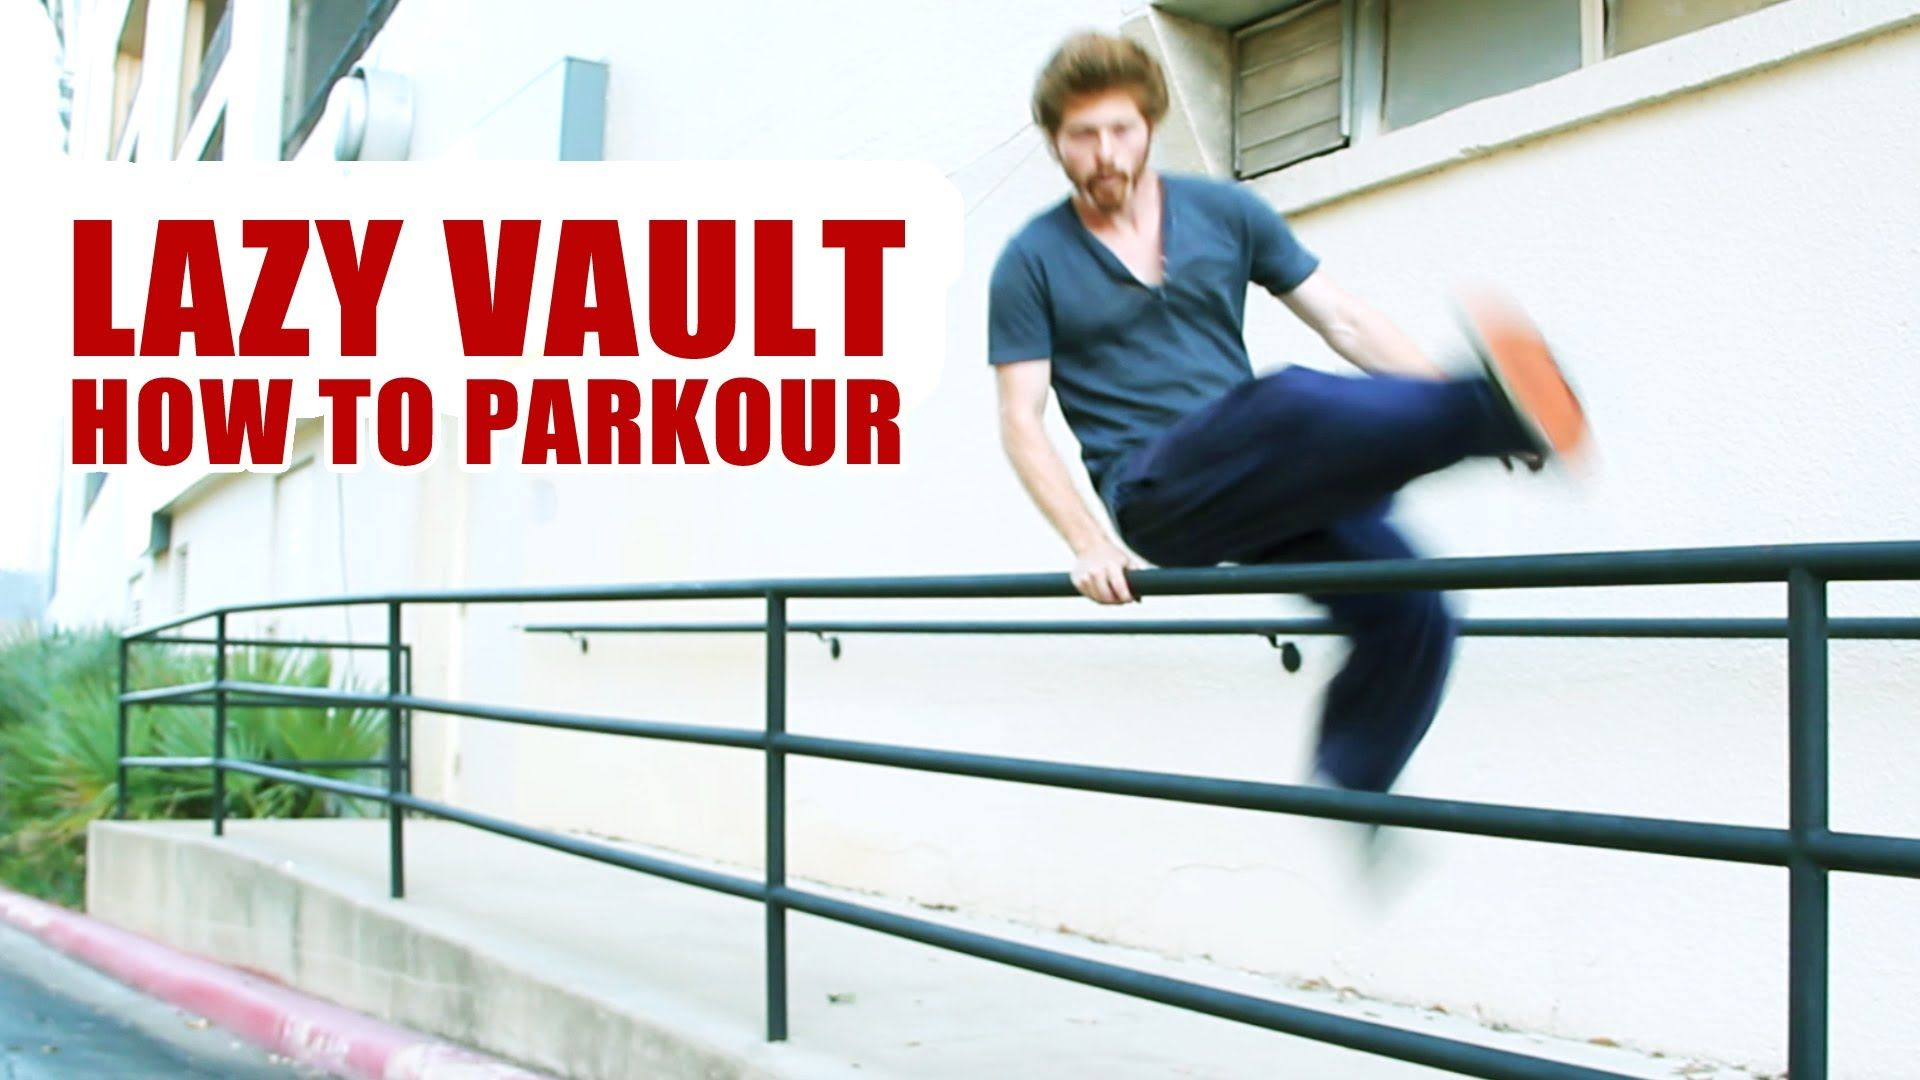 HOW TO LAZY VAULT HOW TO PARKOUR TUTORIAL TAPP